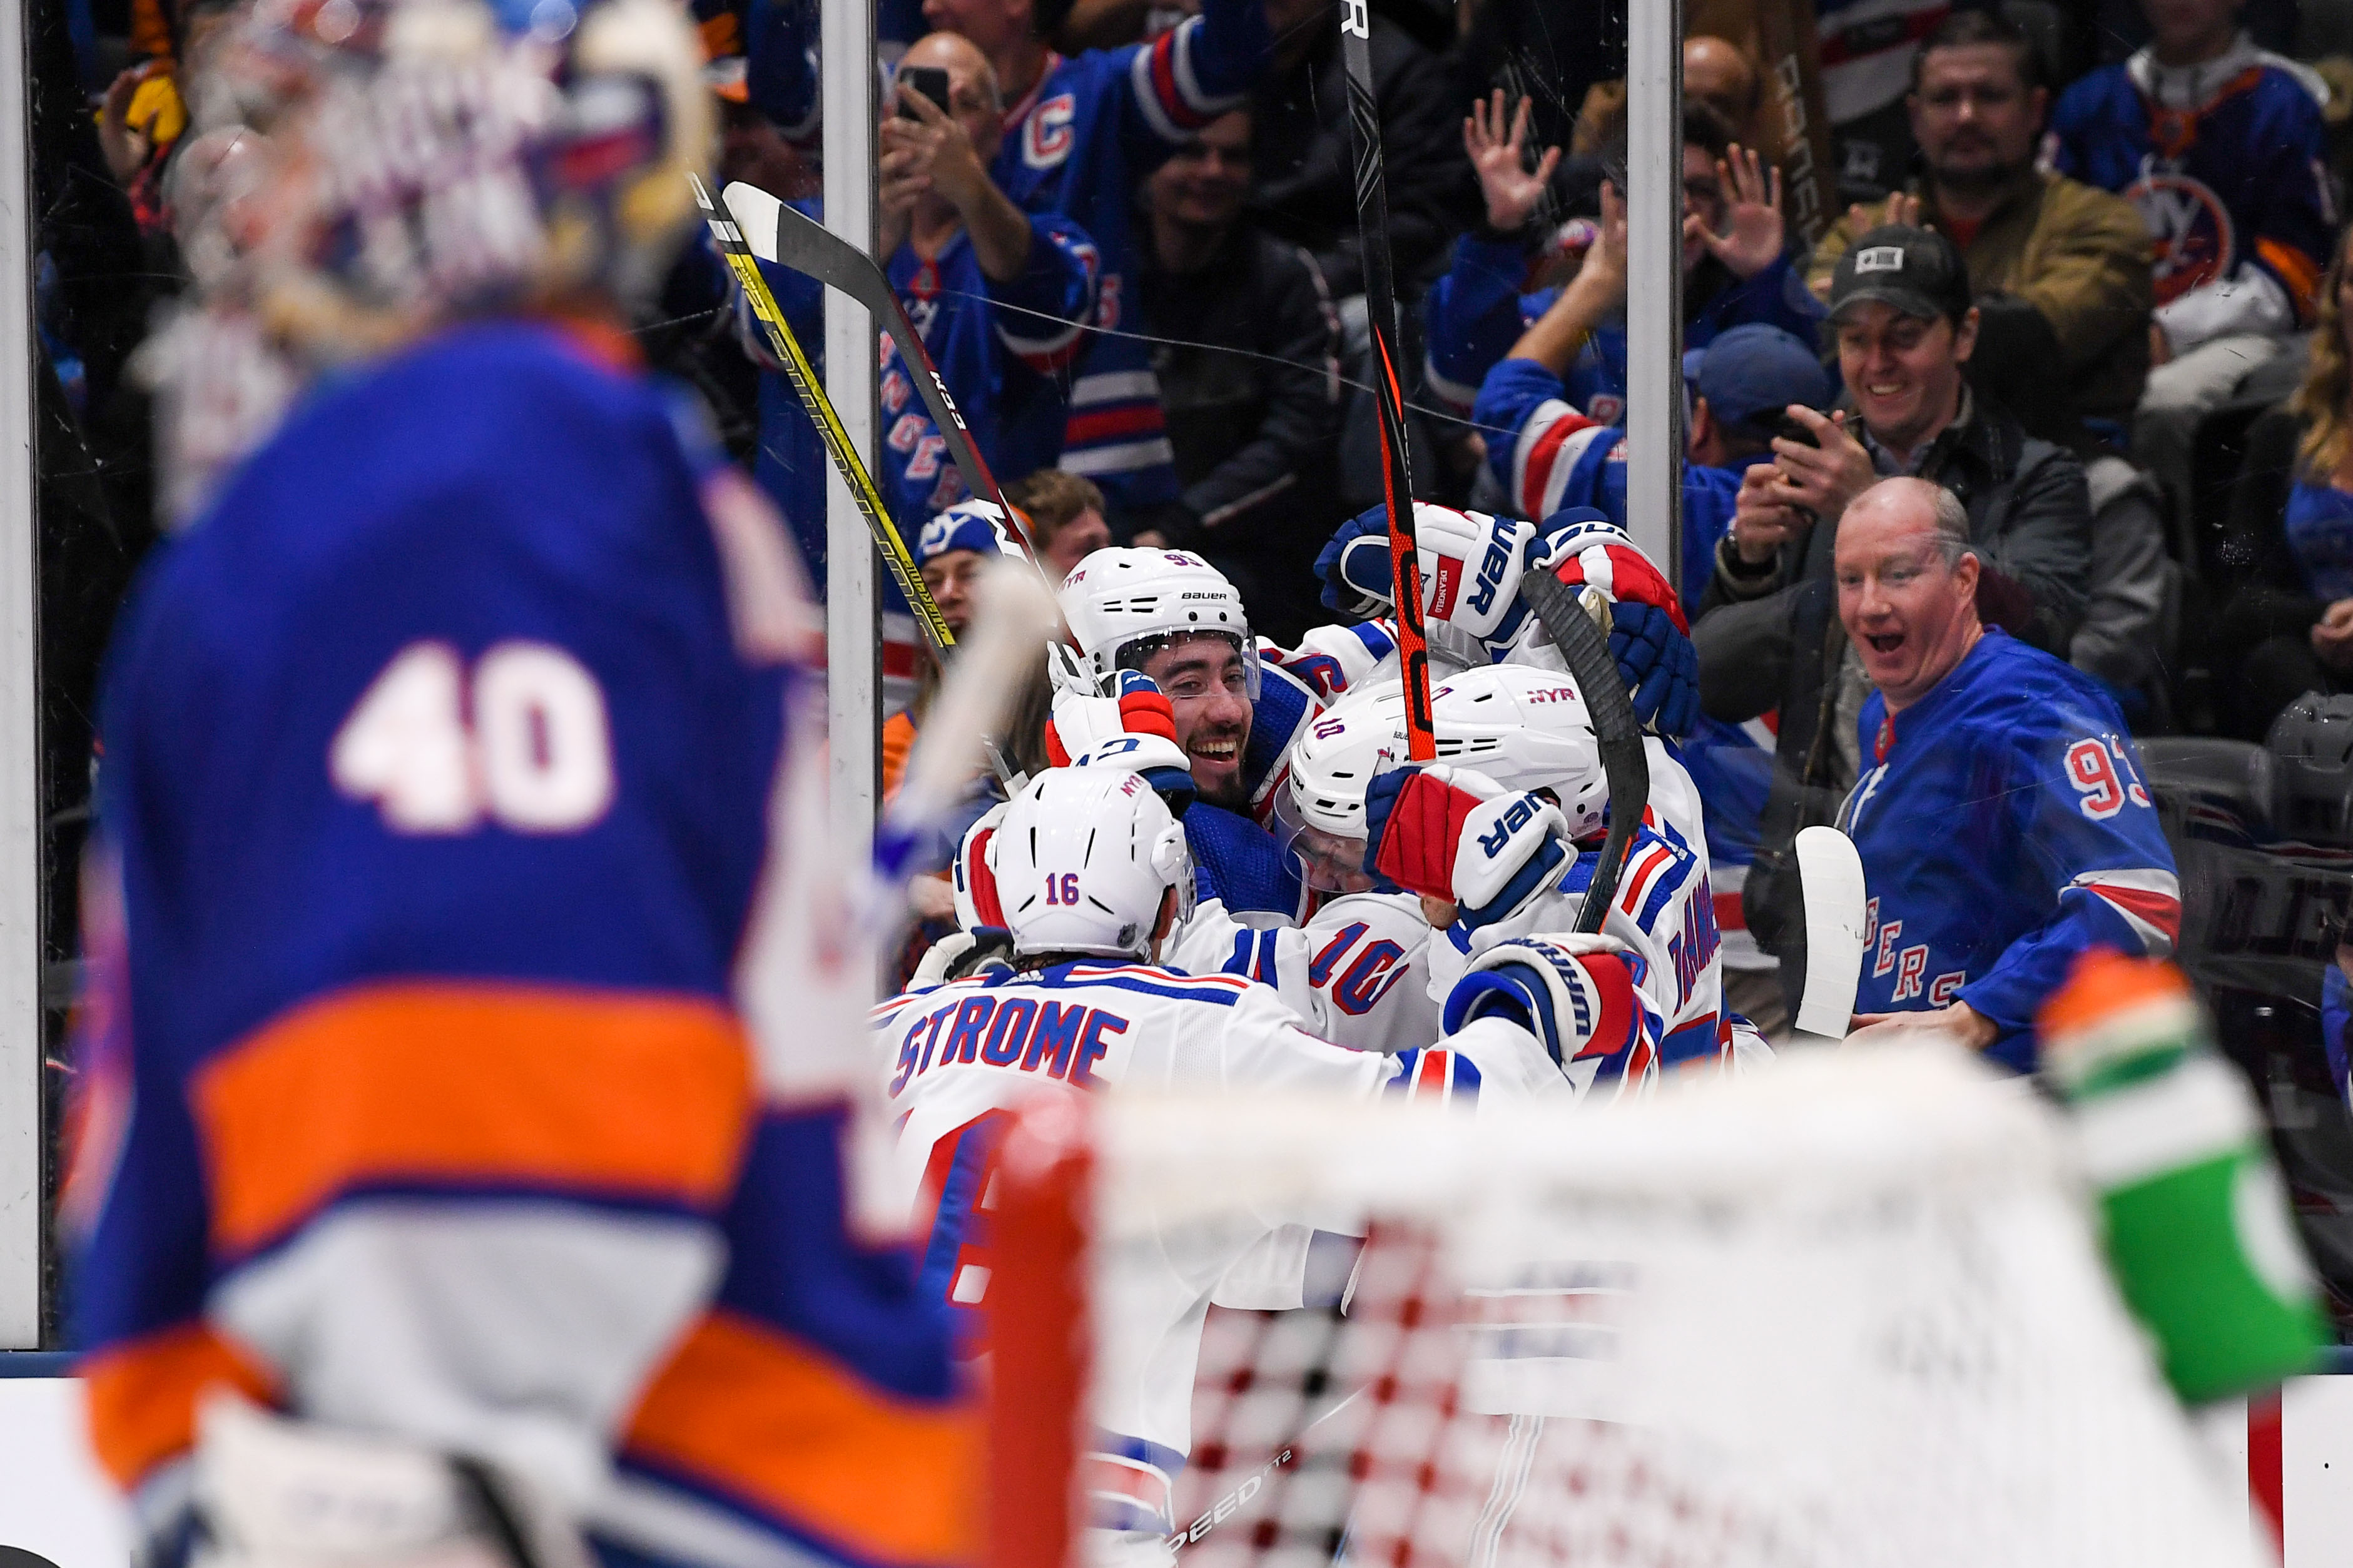 Jan 16, 2020; Uniondale, New York, USA; New York Rangers celebrate after scoring the winning goal against the New York Islanders during the third period at Nassau Veterans Memorial Coliseum. Mandatory Credit: Dennis Schneidler-USA TODAY Sports